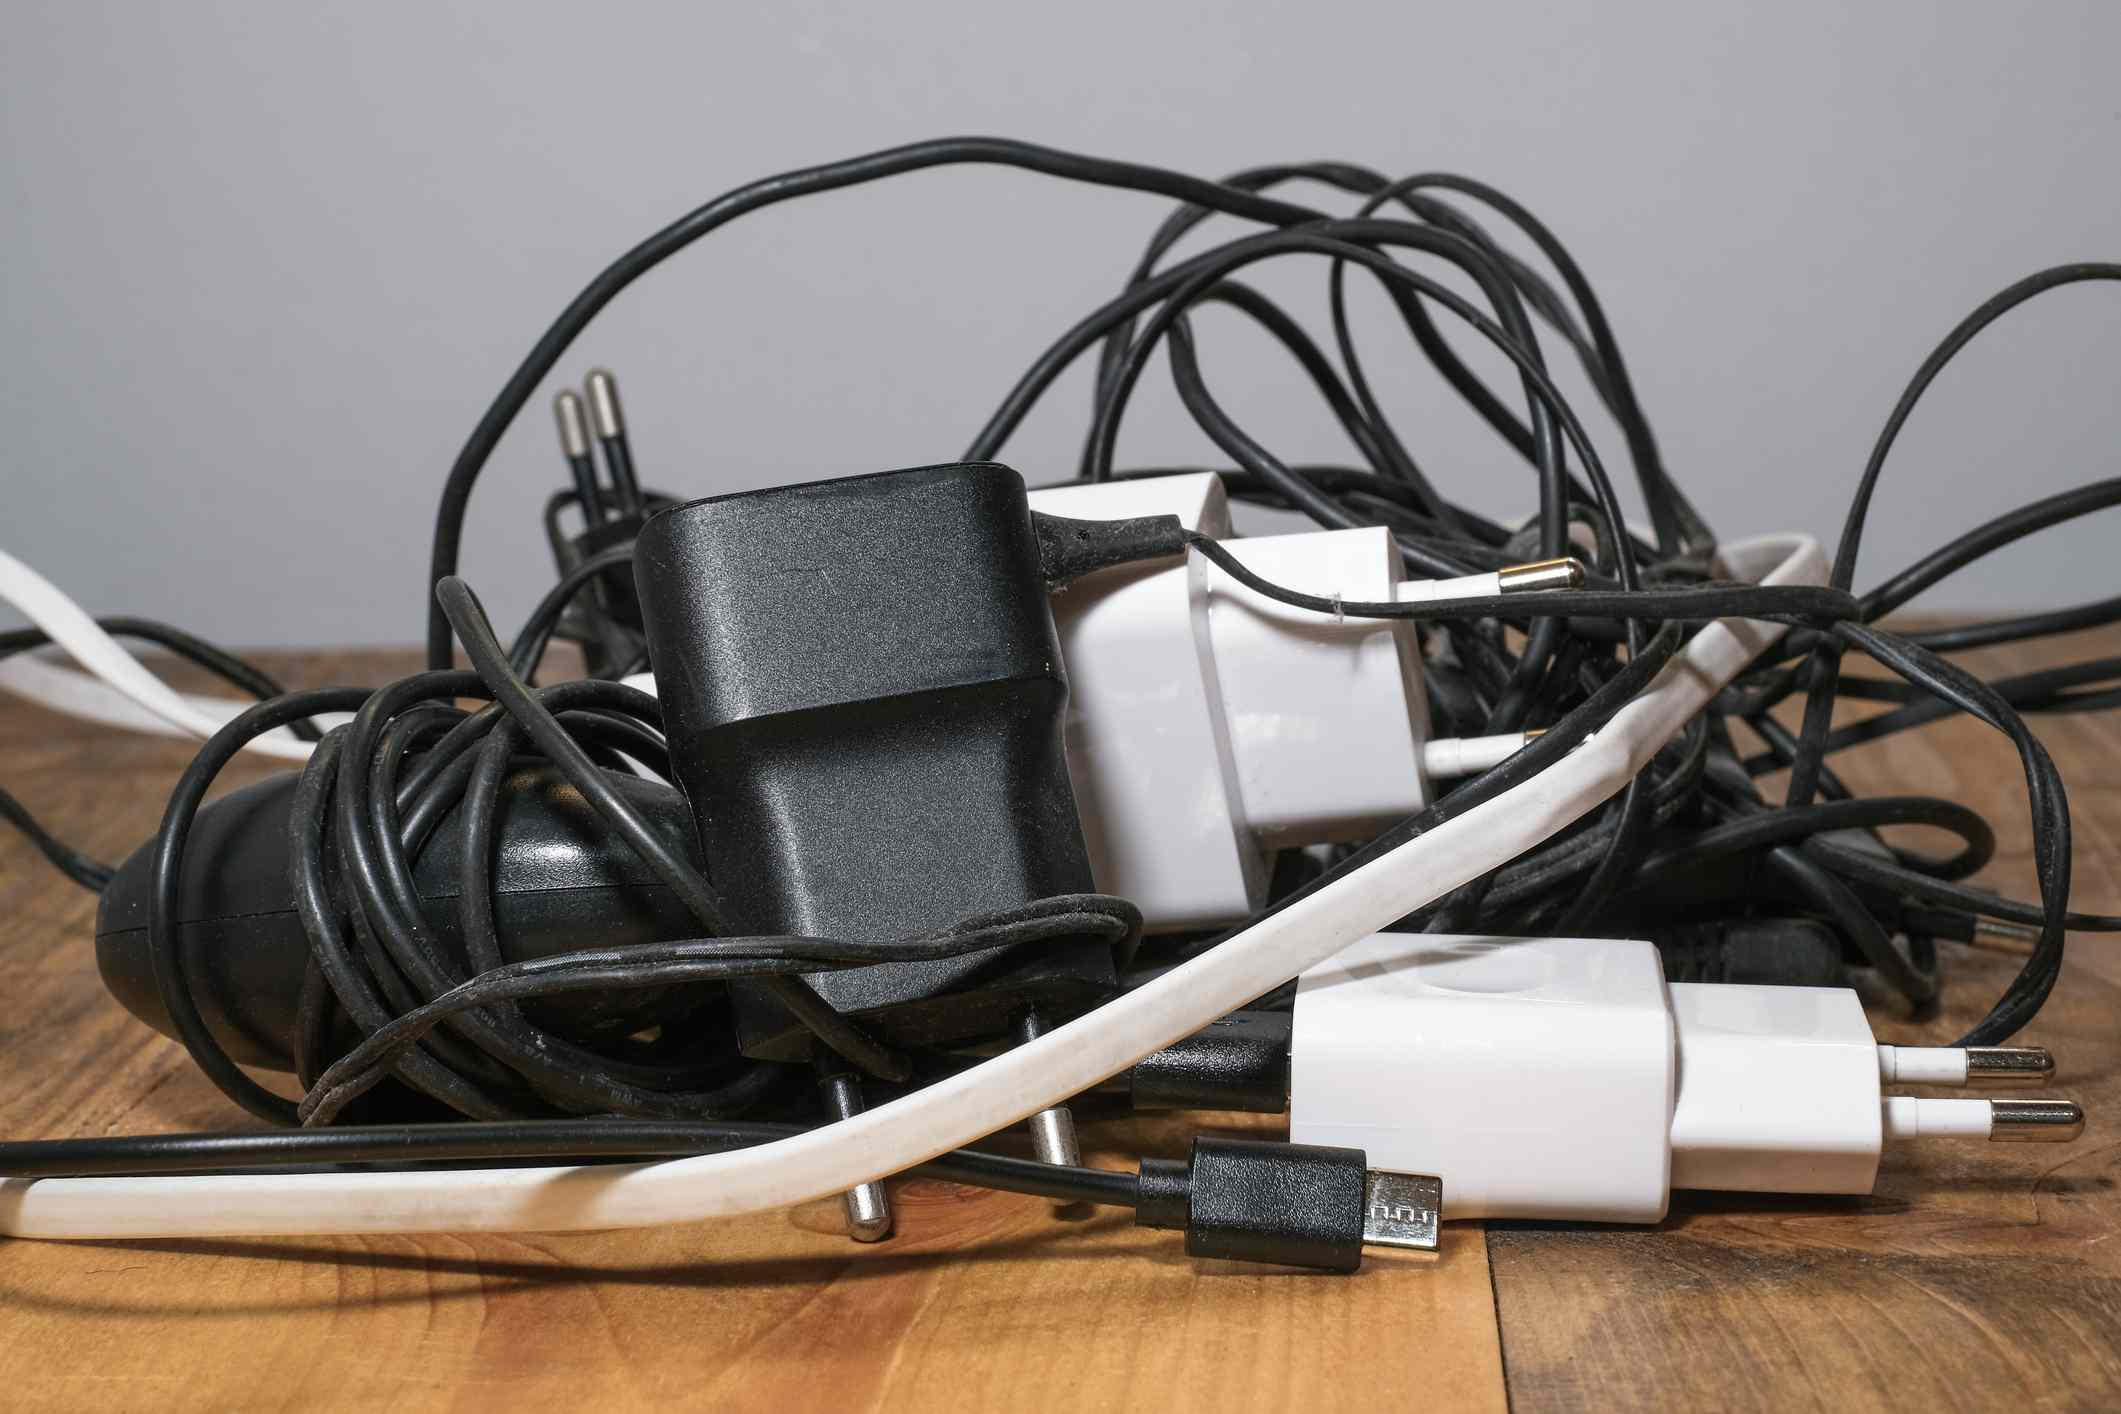 Pile of used smartphone wired chargers